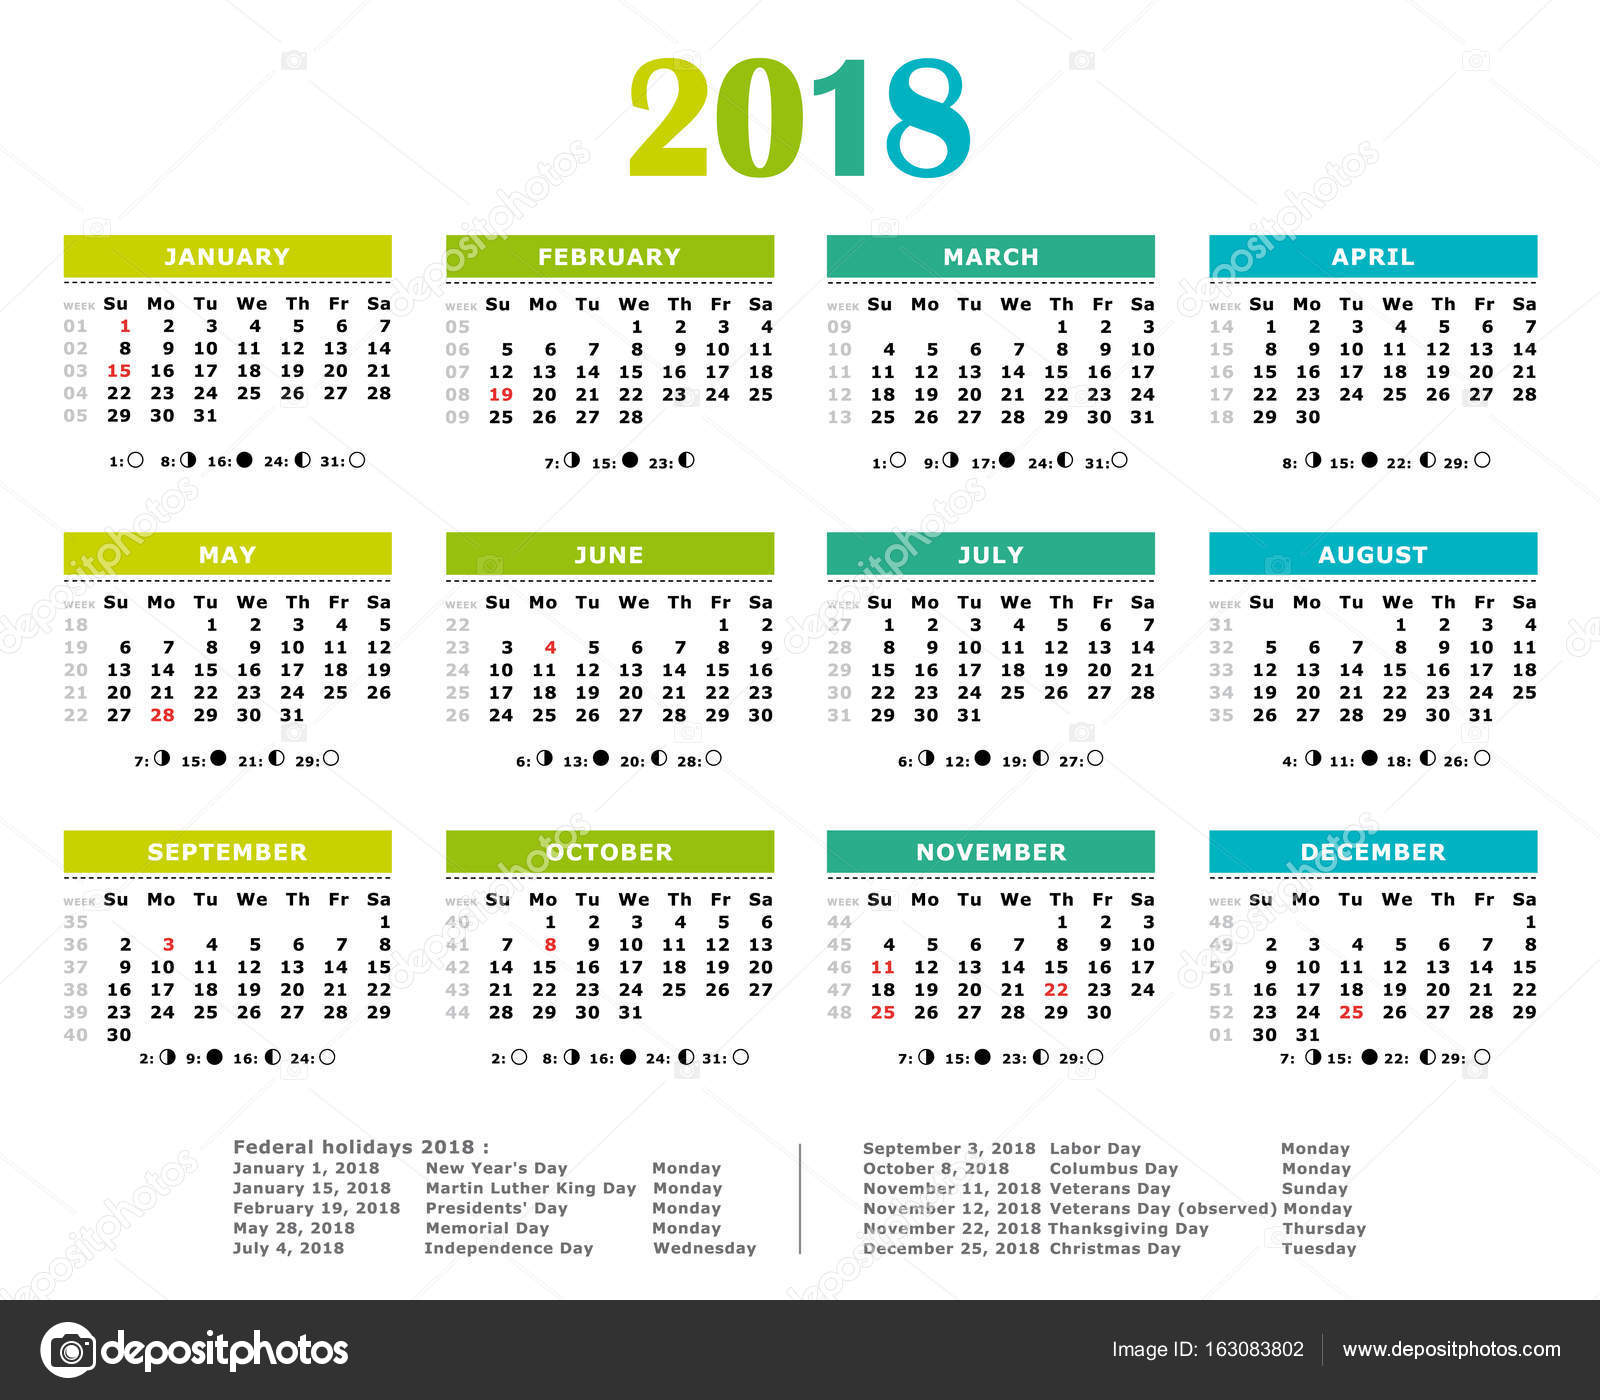 2018 green blue shades yearly calendar federal holidays moon and numbers of weeks